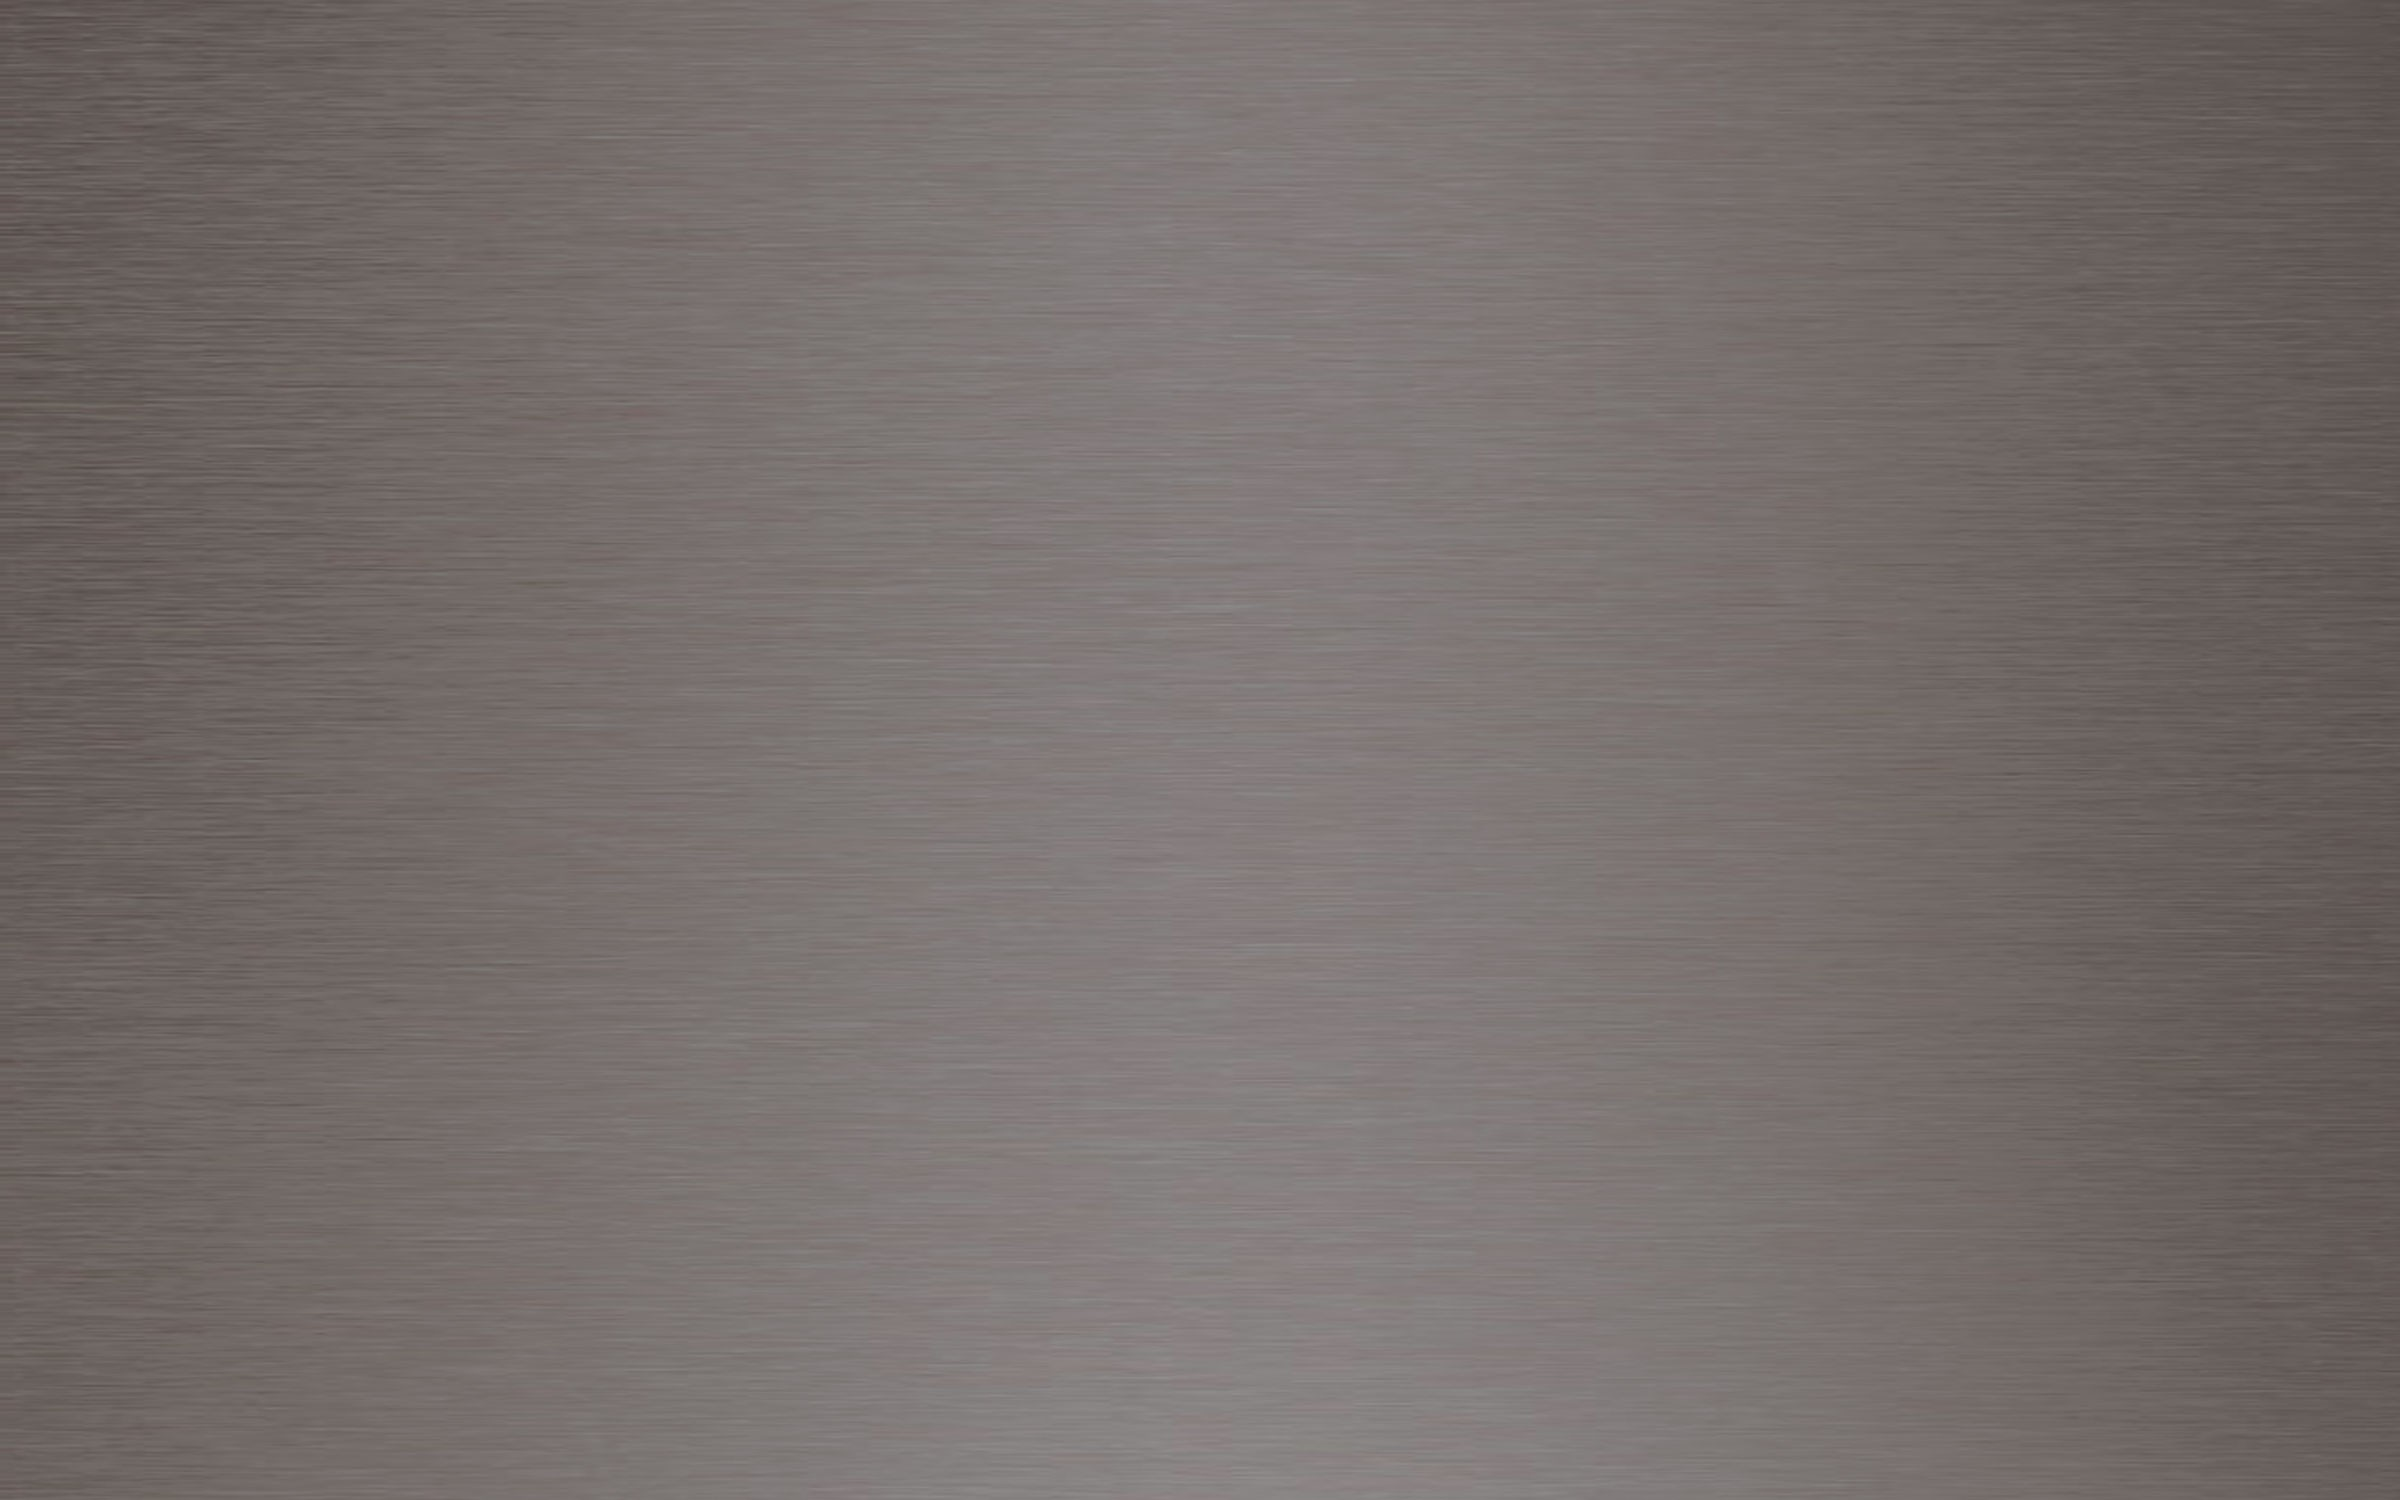 6281 Satin Brushed Smoke Aluminum Laminate Countertops